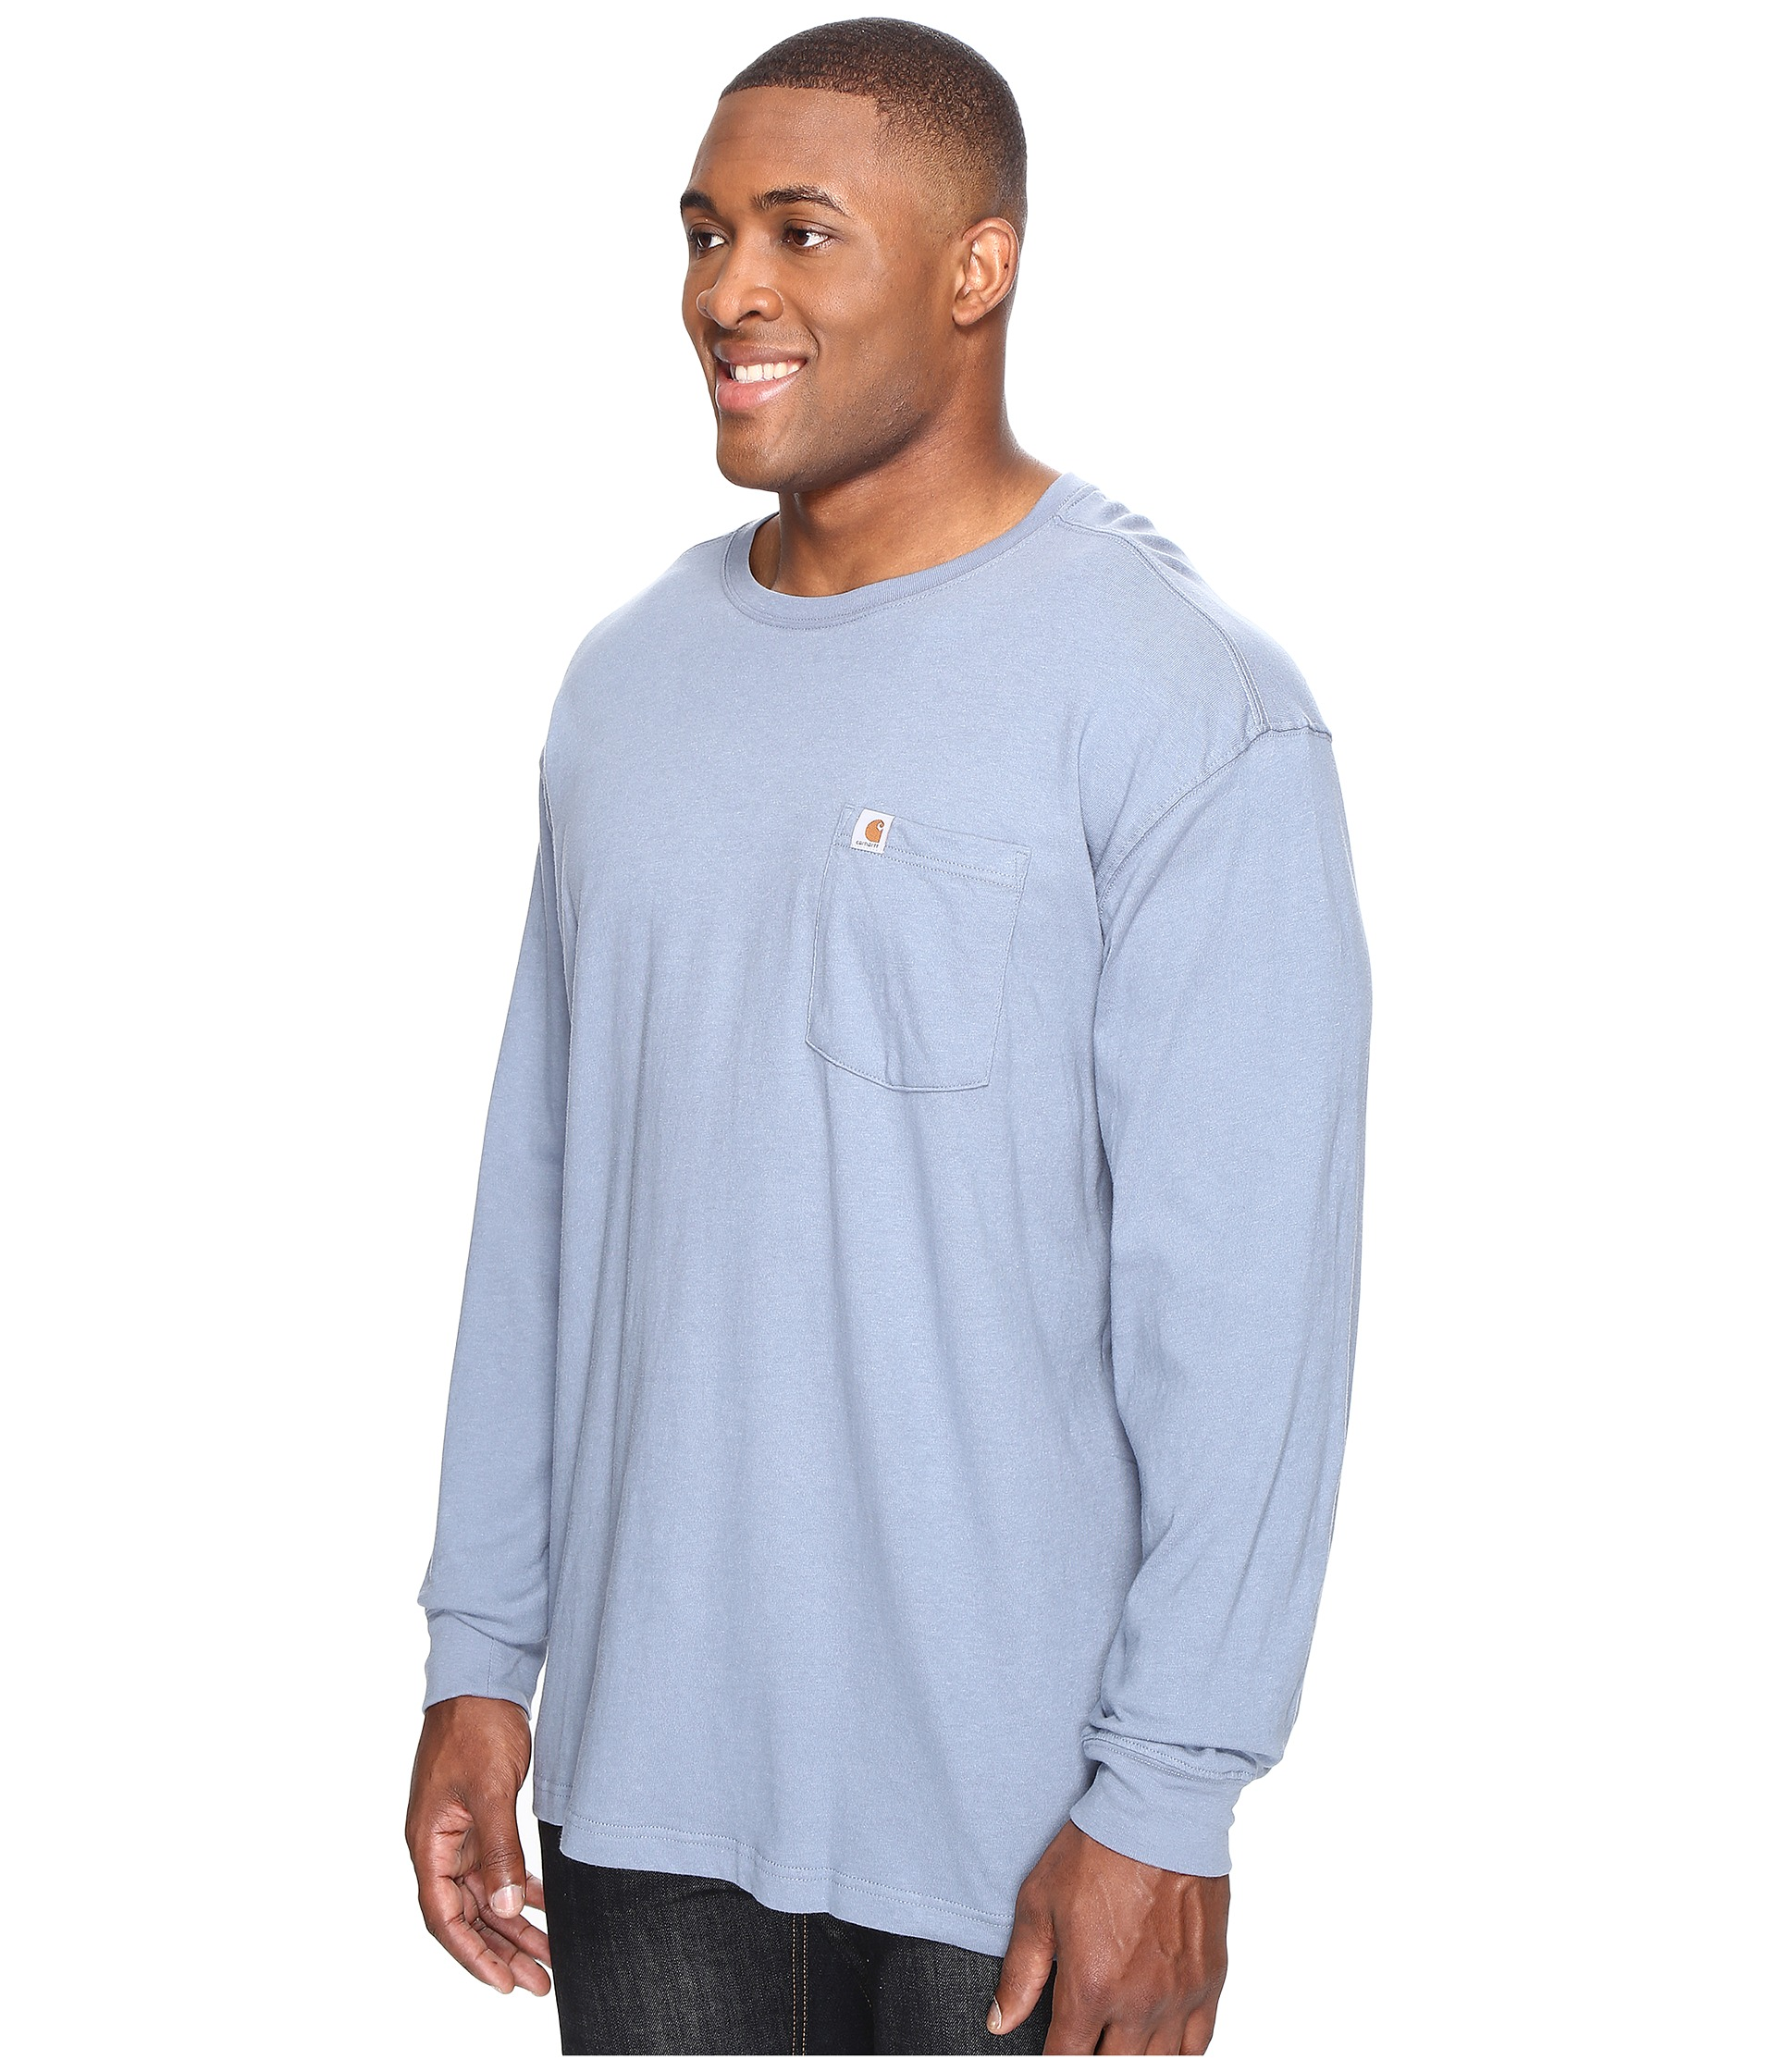 Carhartt big tall maddock graphic carhartt 39 s best friend for Big and tall quick dry shirts